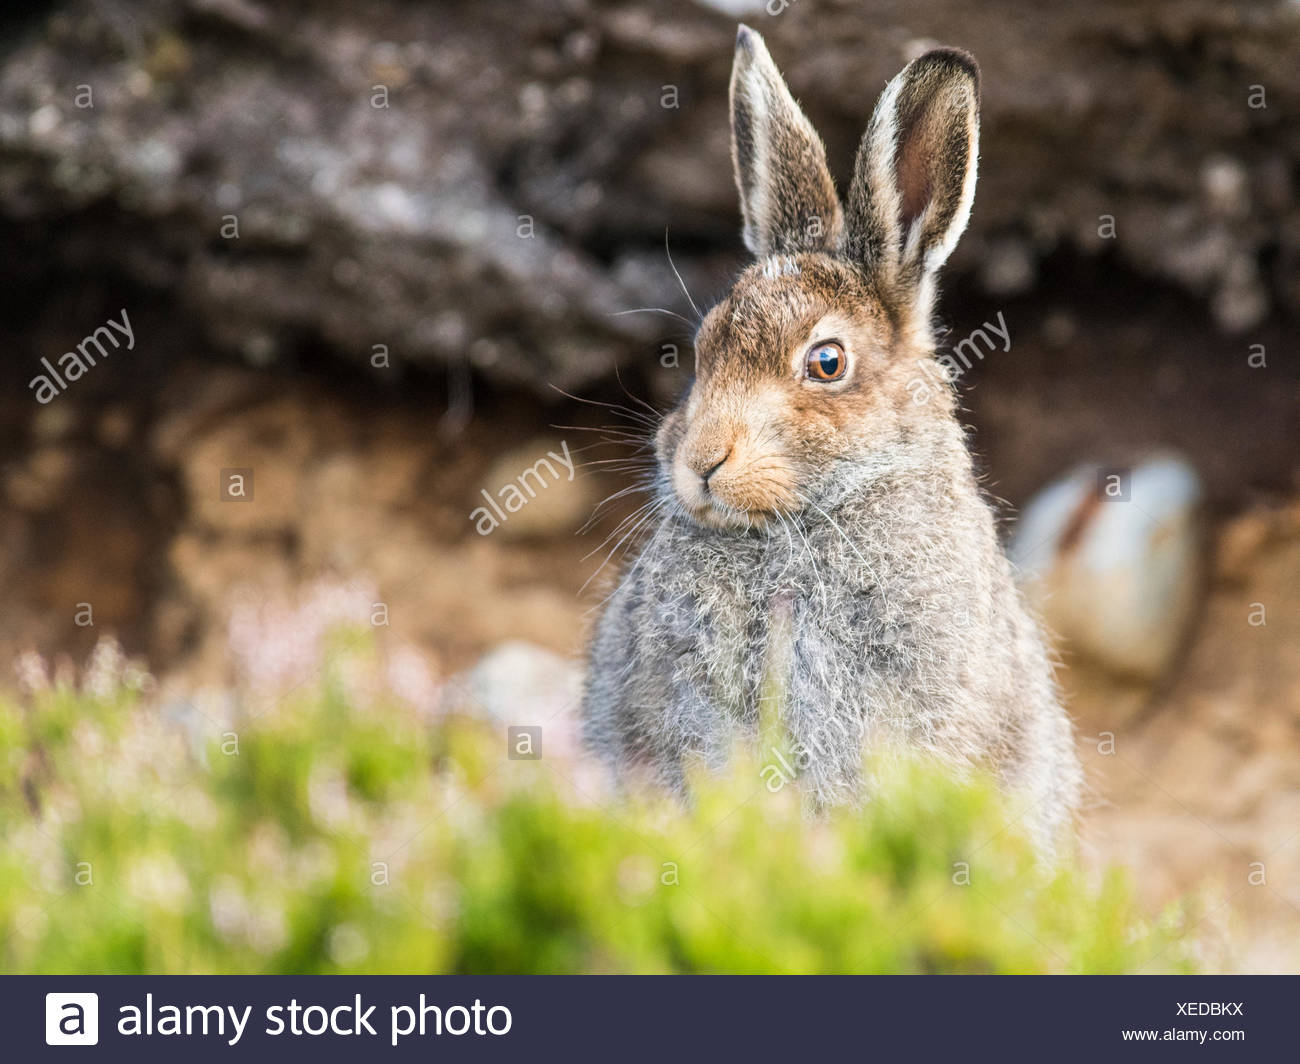 Mountain hare (Lepus timidus) sits in habitat, summer coat, Cairngroms National Park, Highlands, Scotland, Great Britain - Stock Image